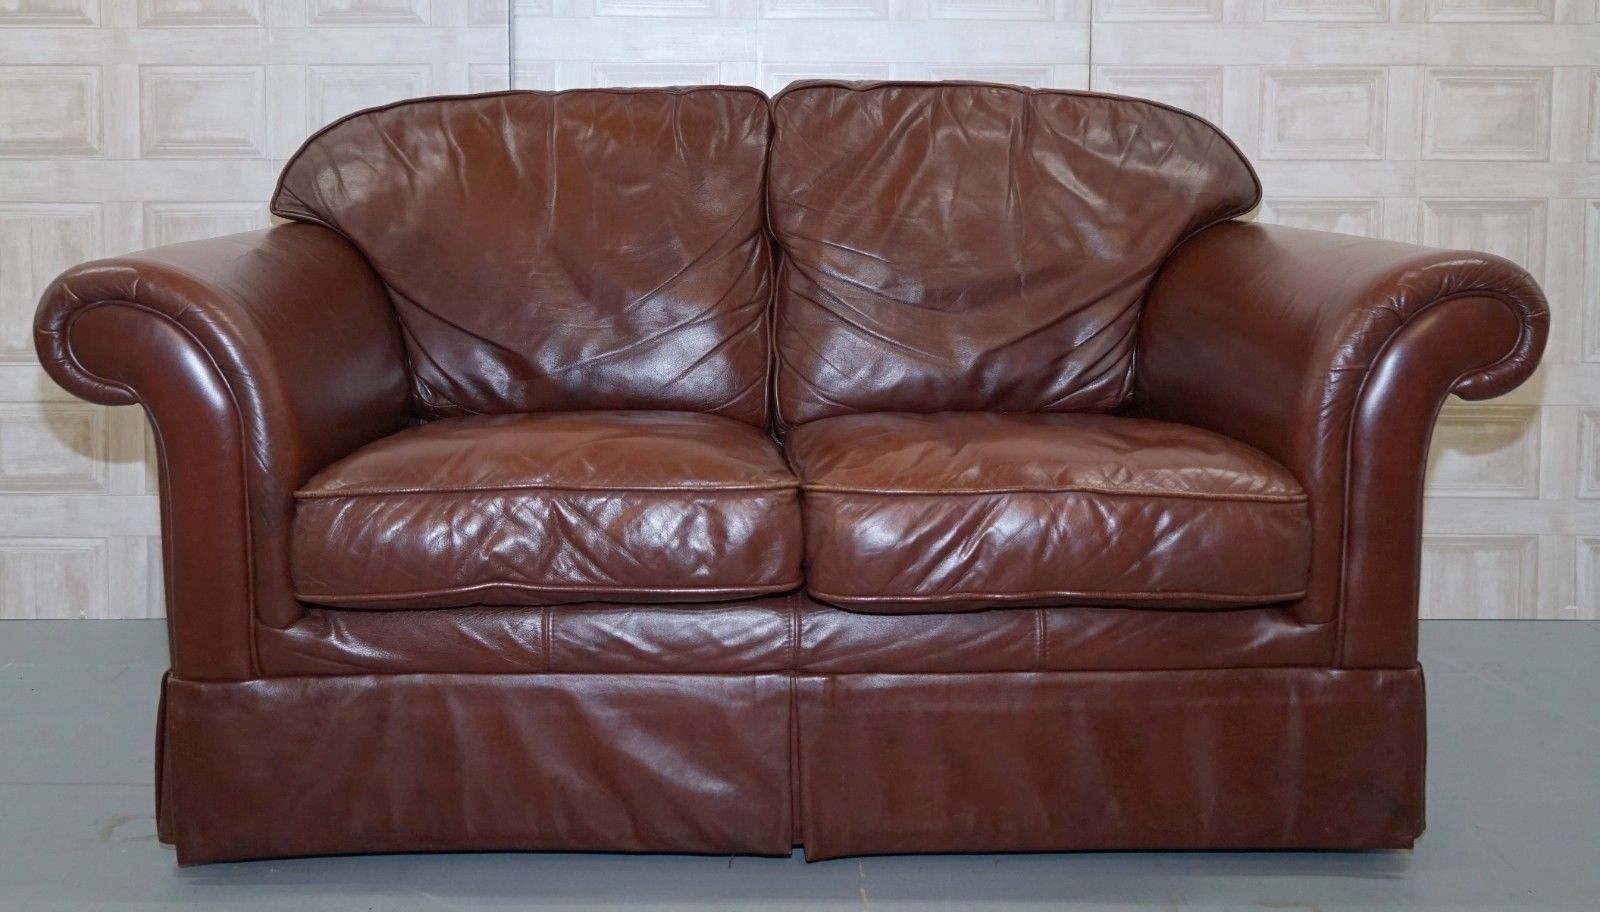 Laura Ashley Brown Leather Sofa In Very Good Condition